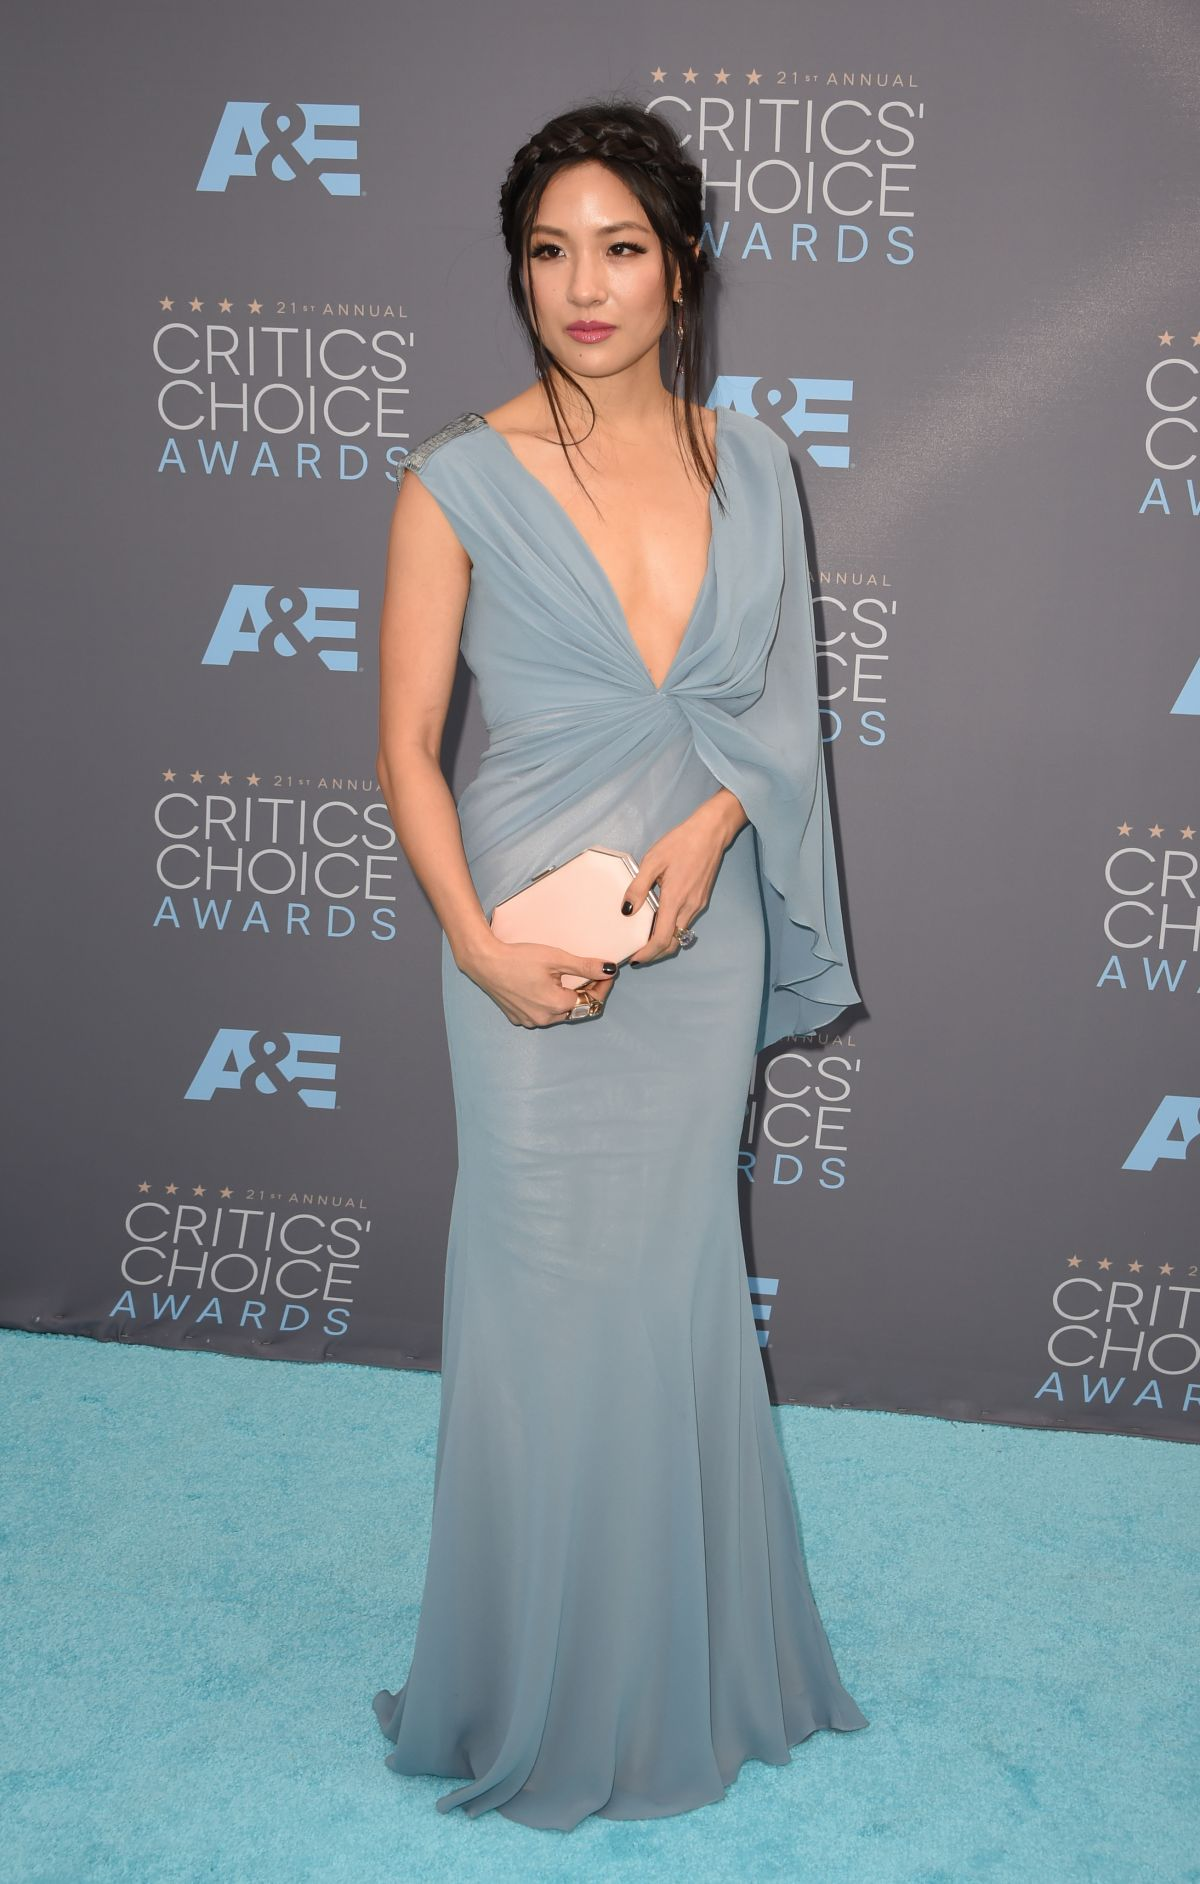 https://www.hawtcelebs.com/wp-content/uploads/2016/01/constance-wu-at-critics-s-choice-awards-2016-in-santa-monica-01-17-2016_1.jpg